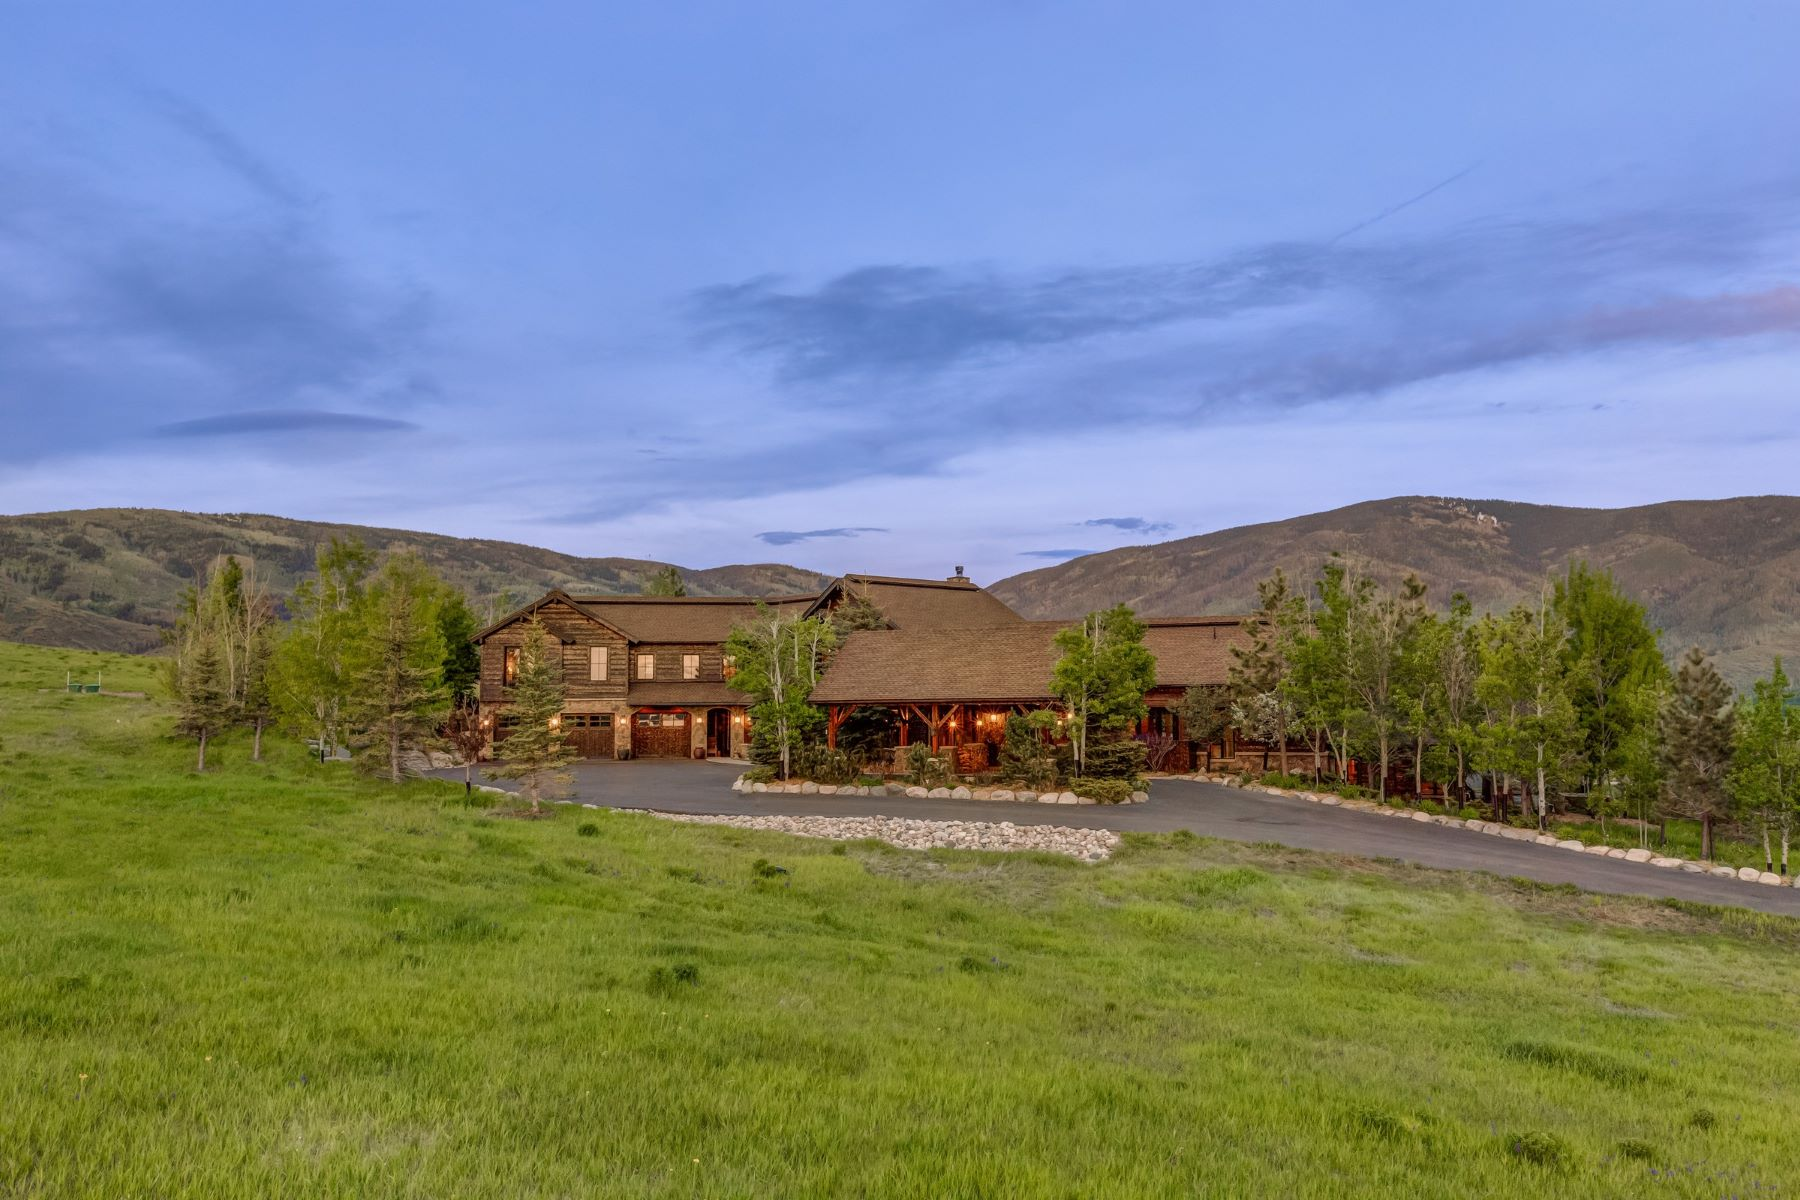 Single Family Home for Sale at Lake Catamount Beautiful High-End Design Lake Catamount Home 32120 County Road 14C Steamboat Springs, Colorado 80487 United States